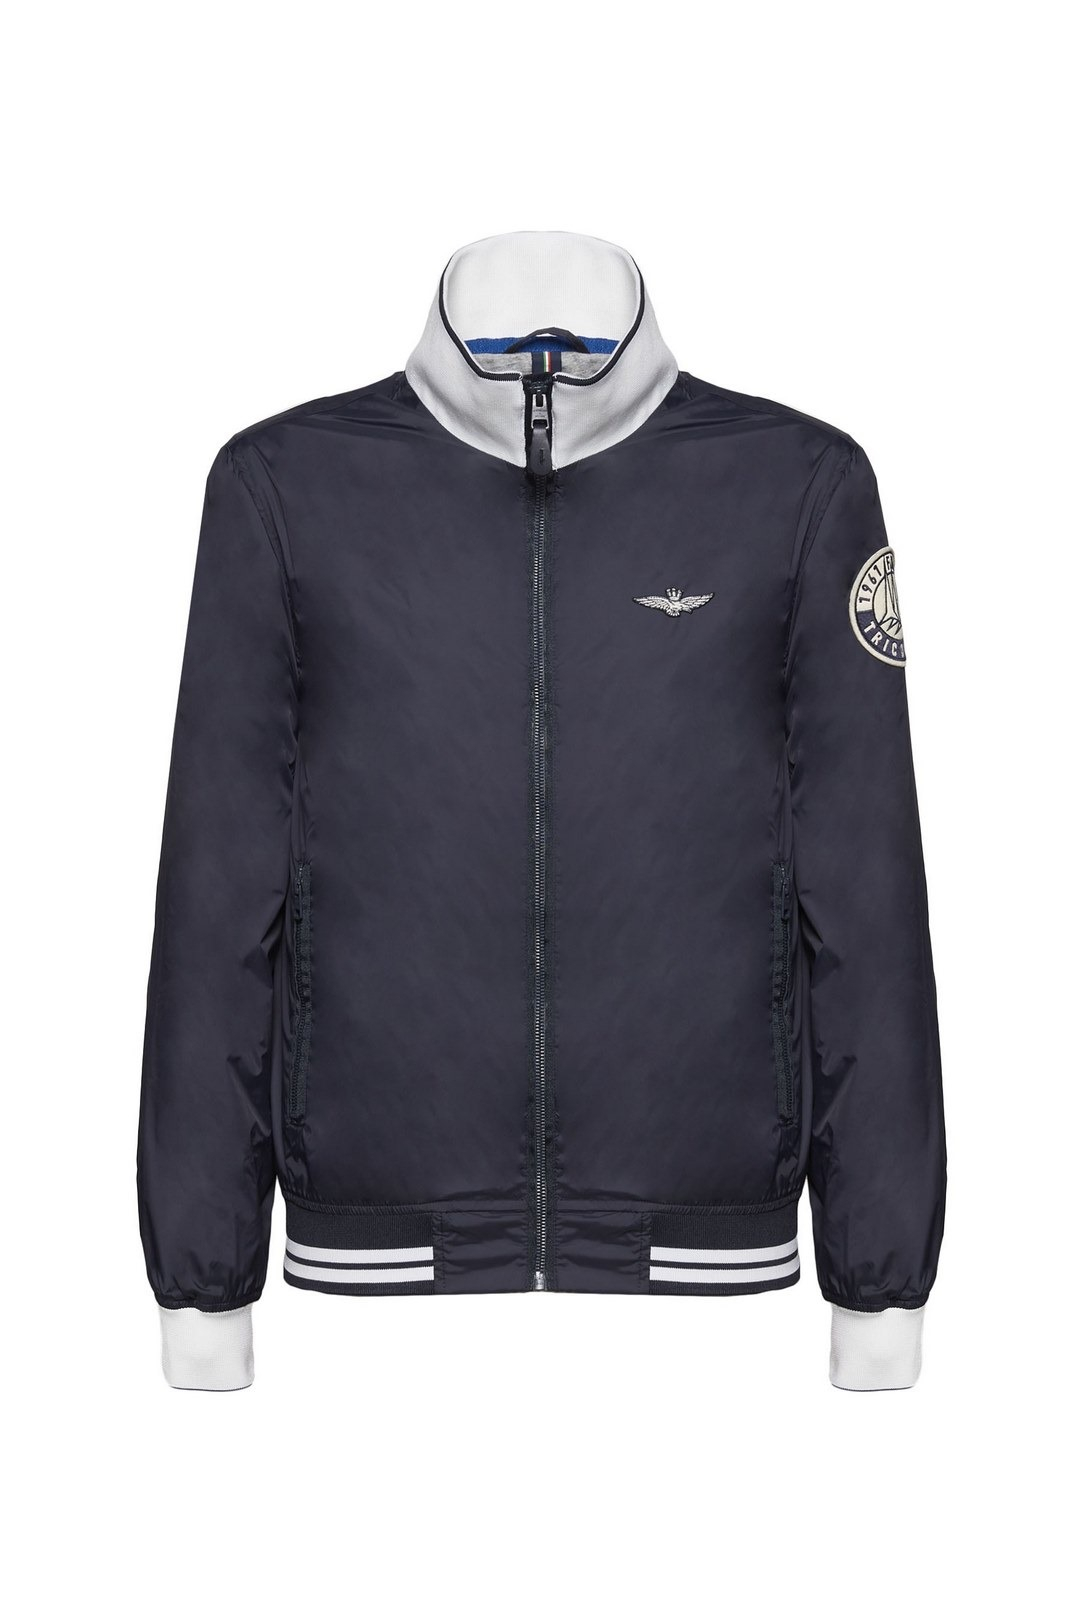 Frecce Tricolori Sailor jacket 1